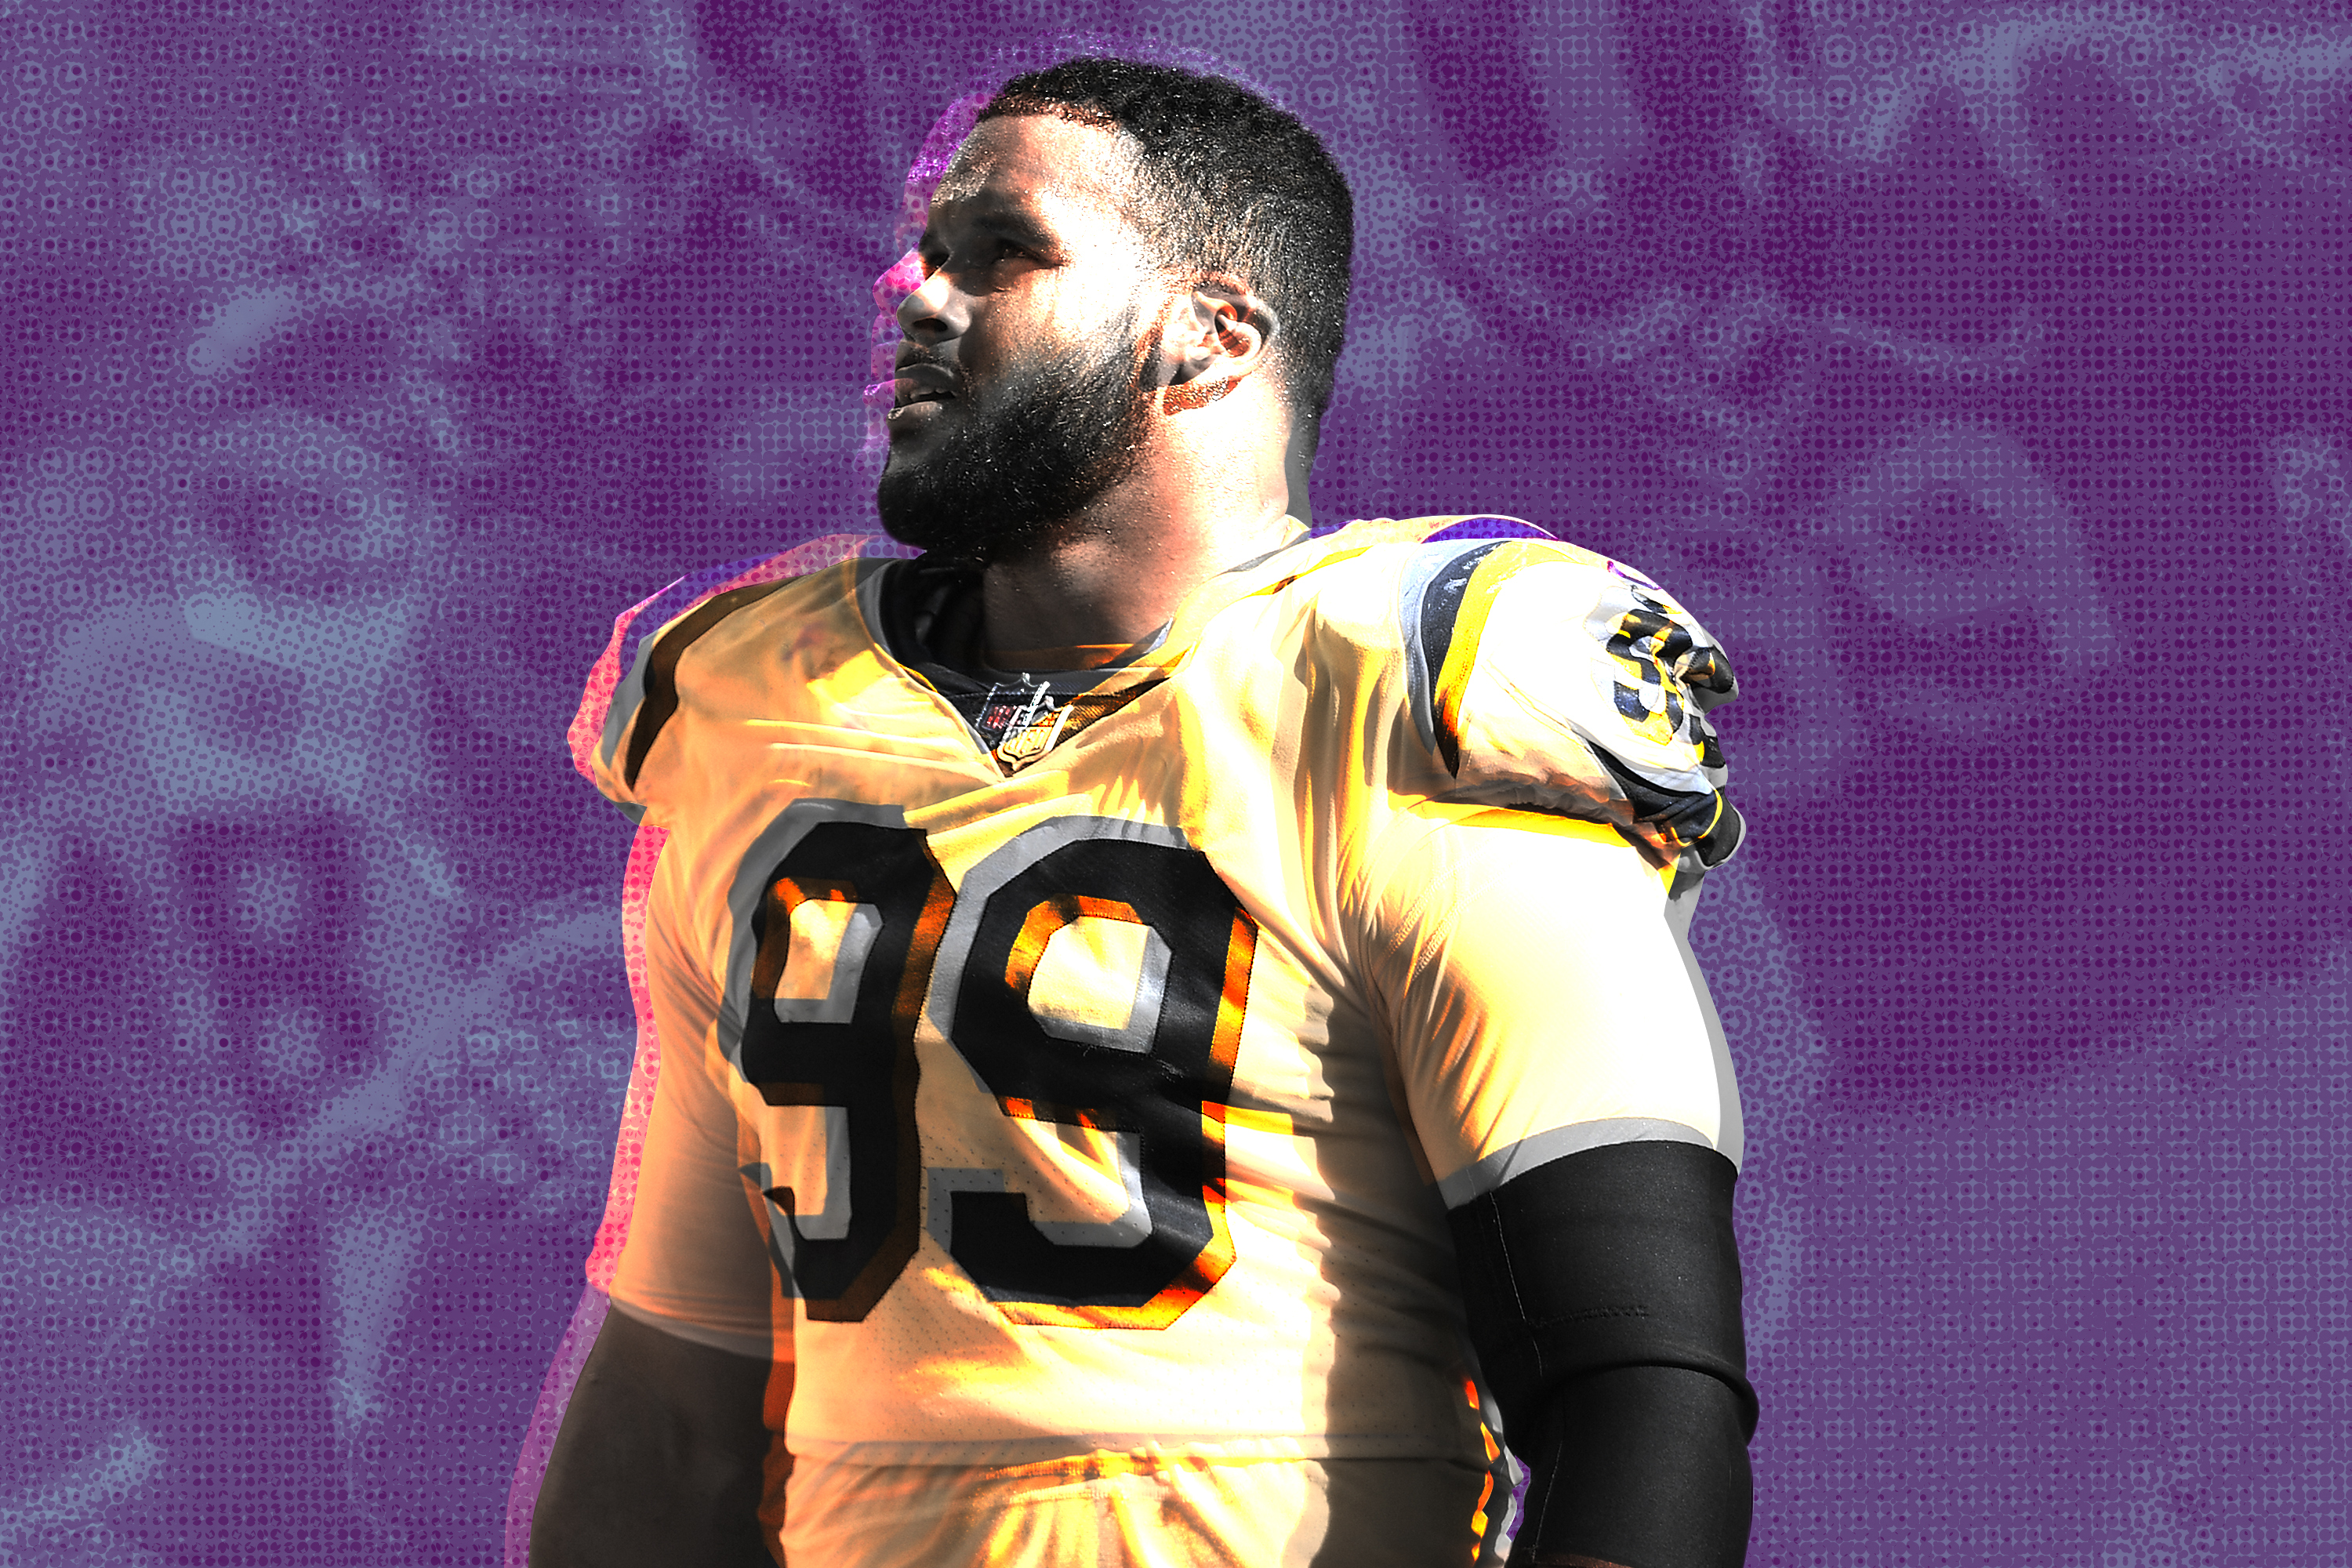 There S Nothing O Lines Can Do About Aaron Donald Bleacher Report Latest News Videos And Highlights